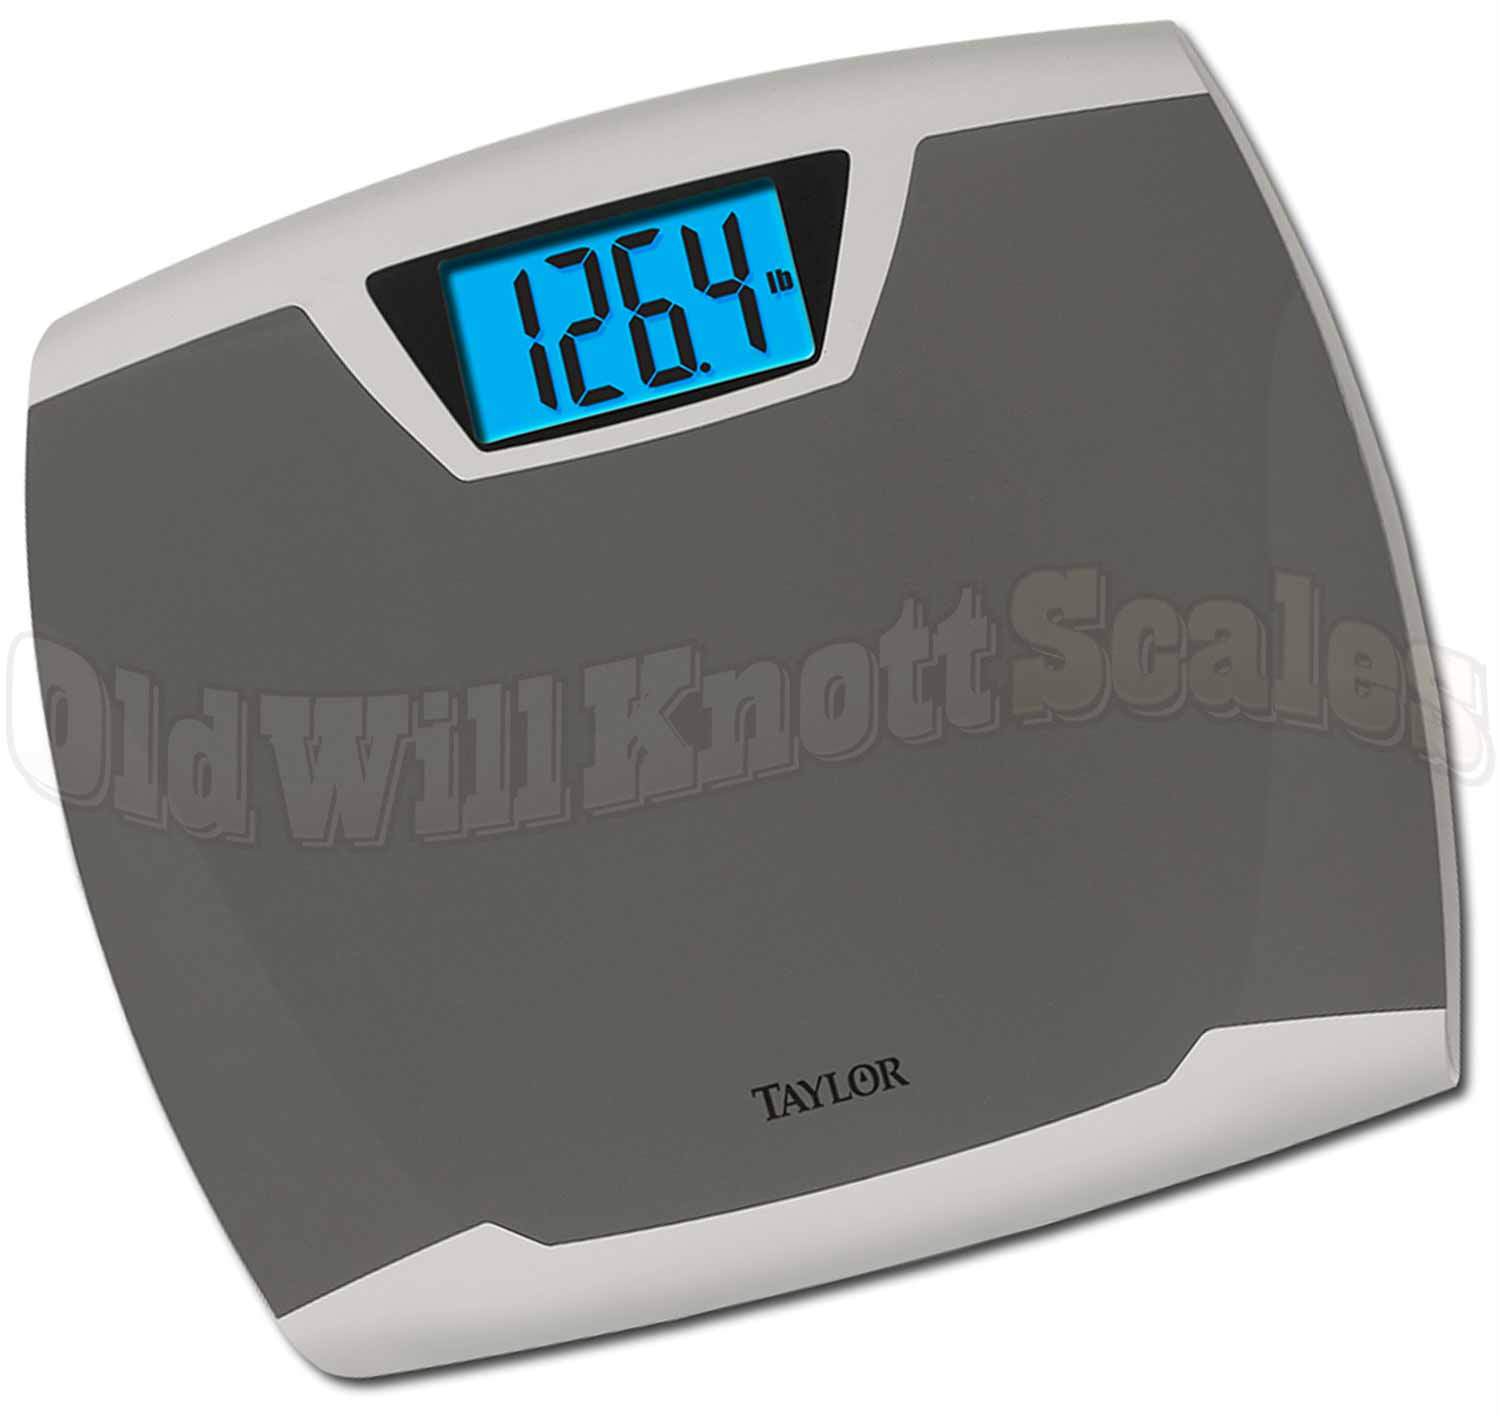 Taylor 7370 high capacity antimicrobial bathroom scale - How to calibrate a bathroom scale ...